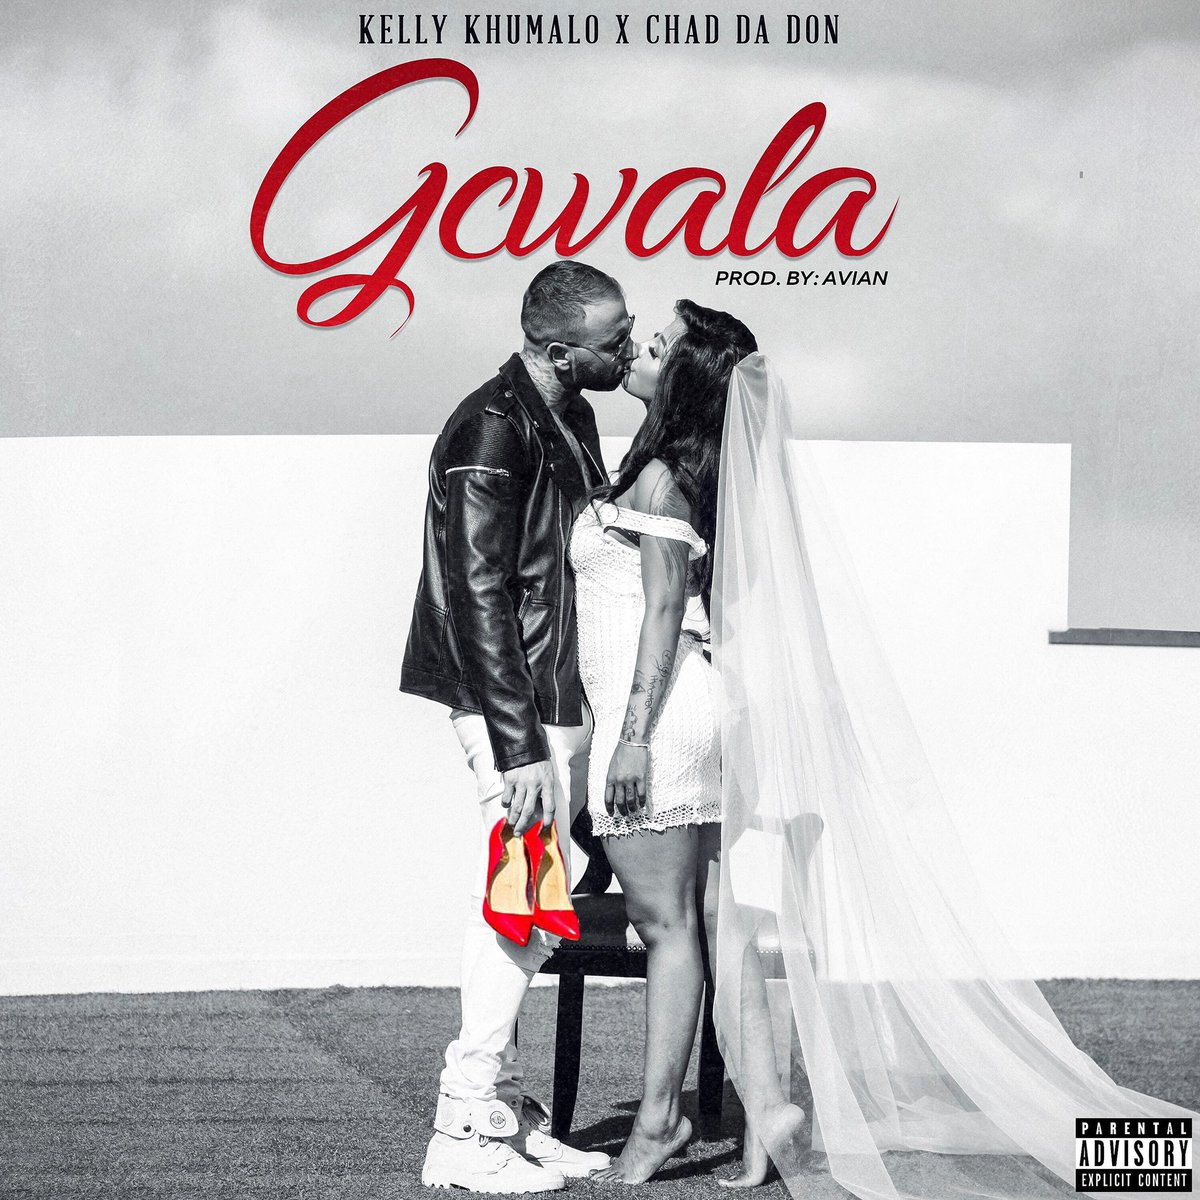 chad da don Listen To Chad Da Don x Kelly Khumalo's New 'Gcwala' Song D3XxXsHW4AAKqPN